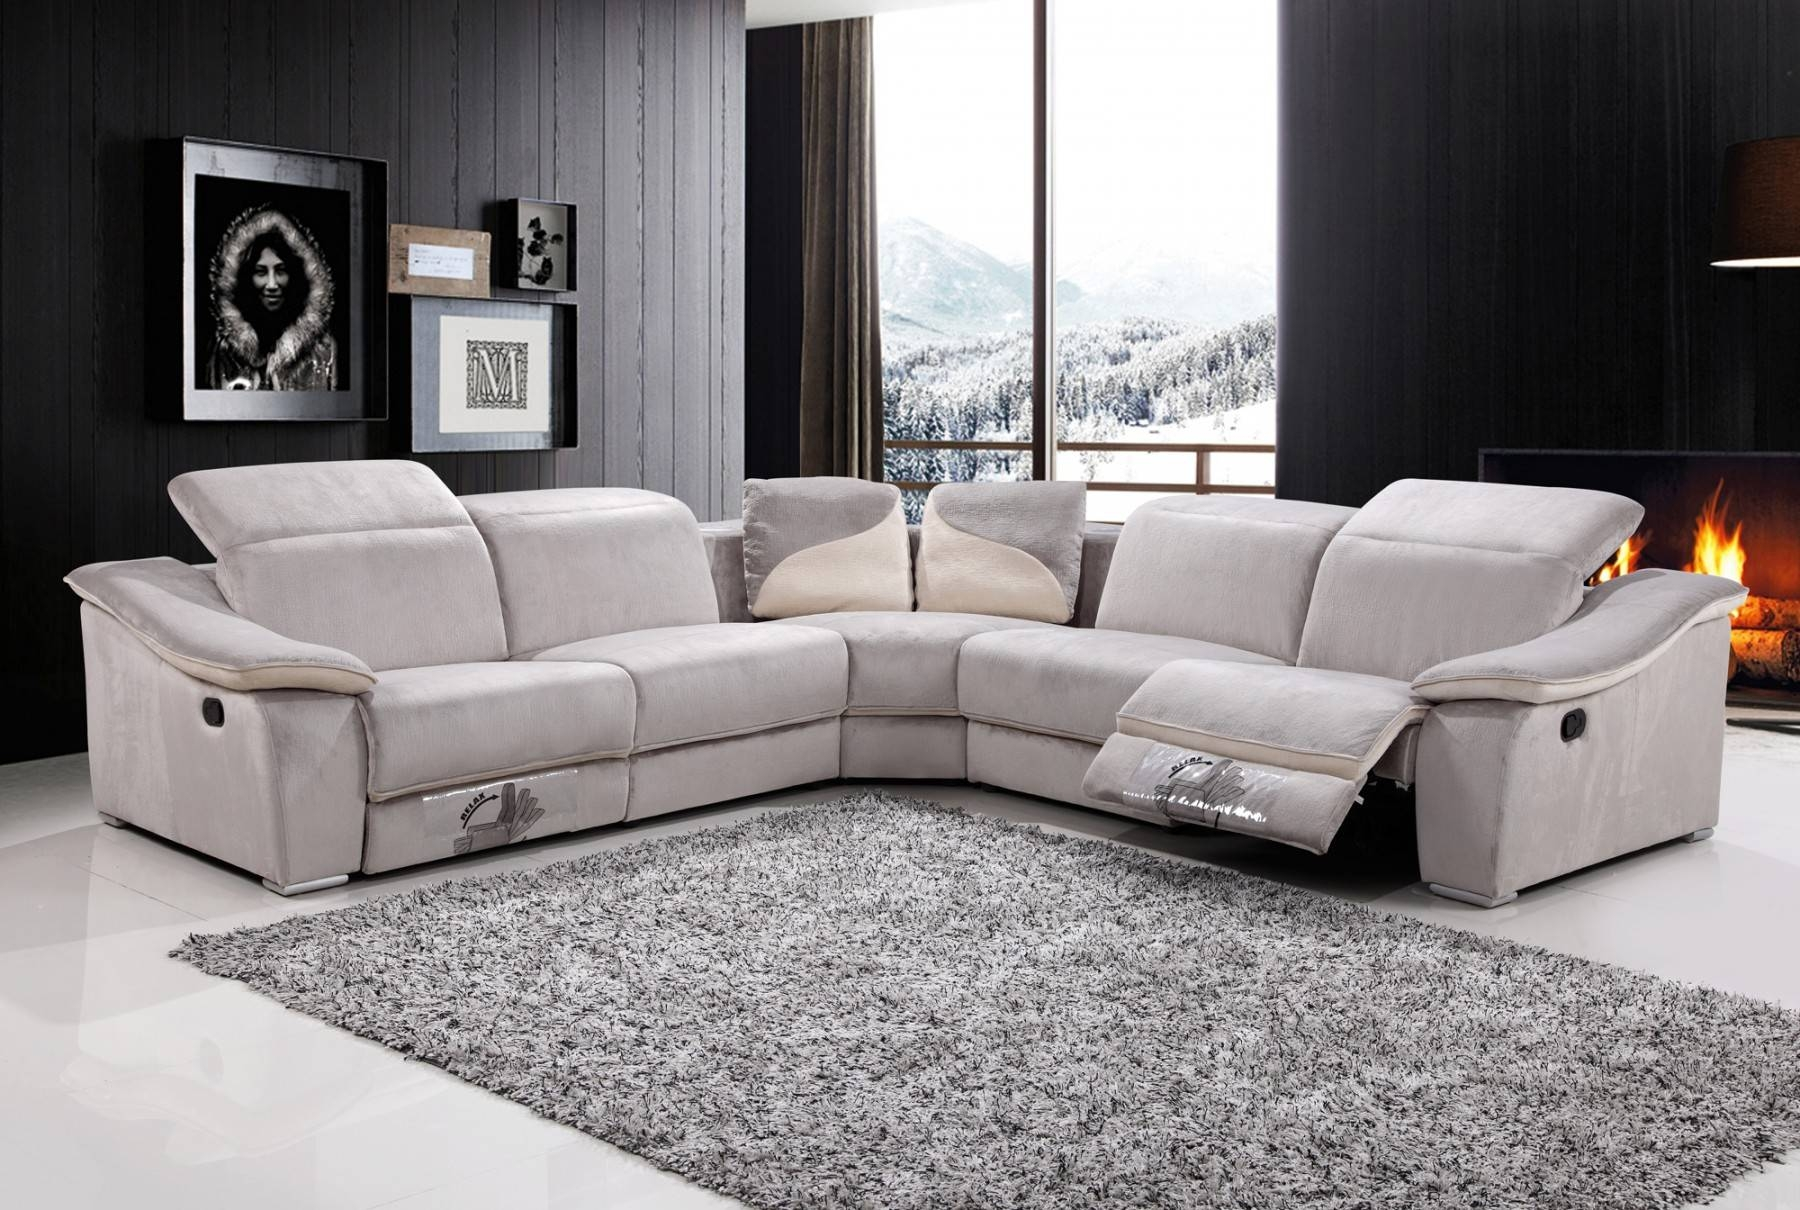 Sofas Center : High Quality Sectional Sofa Brandsquality Azbest with regard to The Bay Sofas (Image 16 of 25)